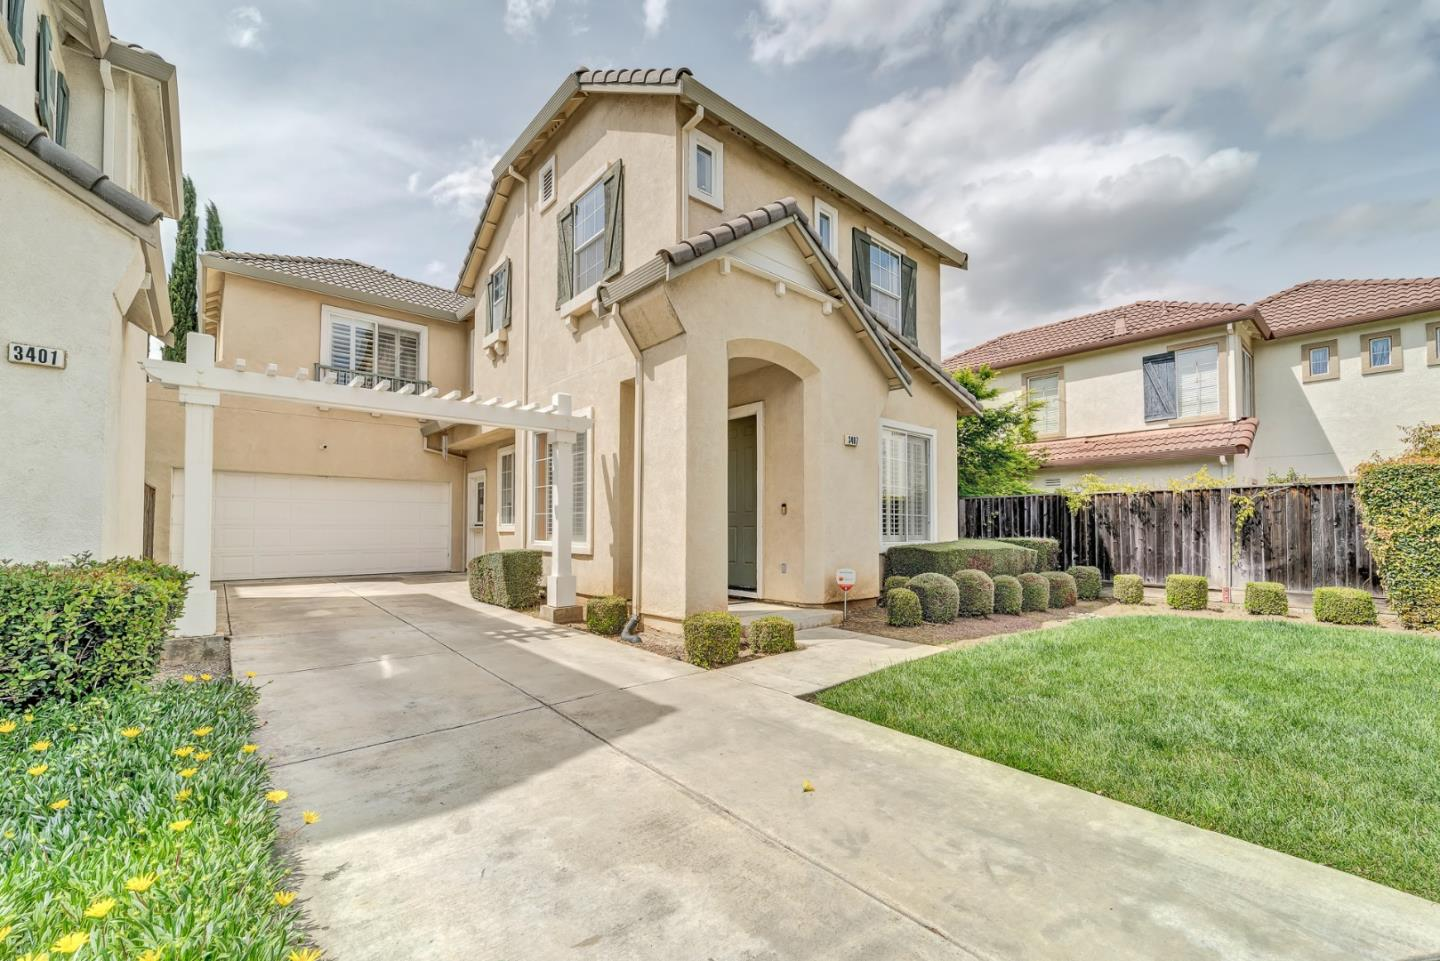 Detail Gallery Image 1 of 1 For 3407 Wasson Ct, San Jose, CA, 95148 - 3 Beds   2/1 Baths